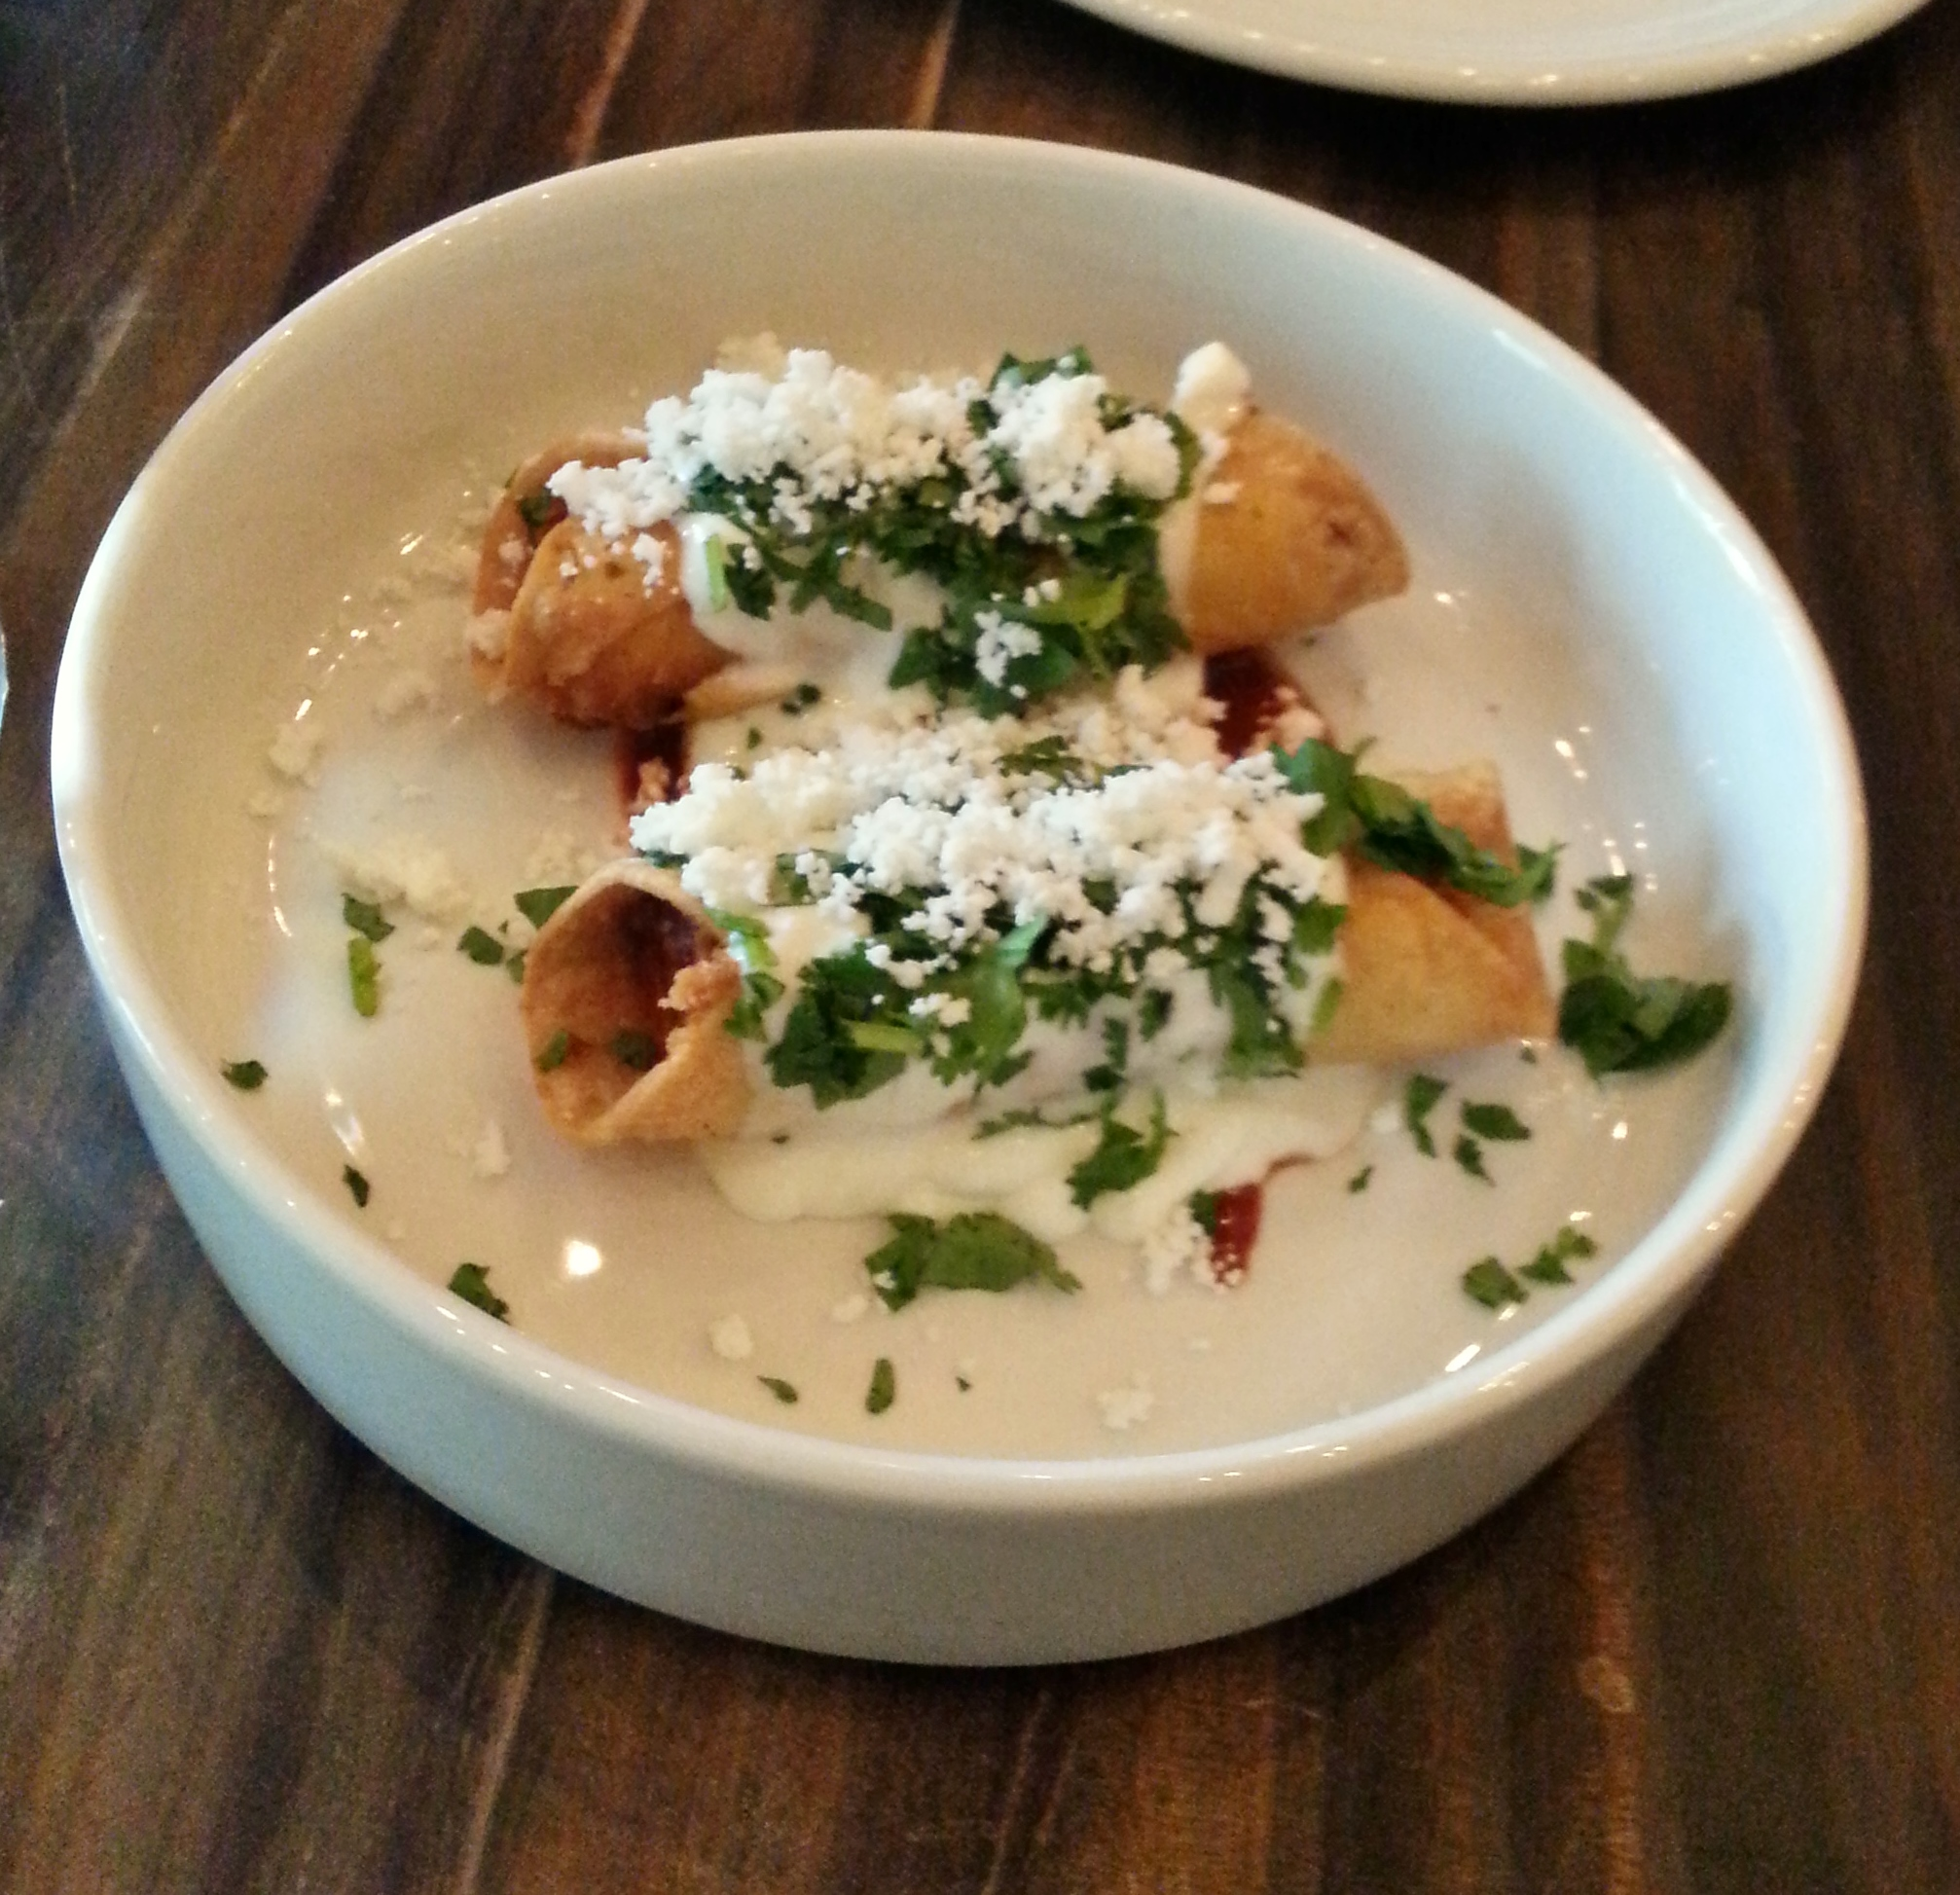 Taquitos potato & sheeps milk cheese, salsa de ajo, crema, queso fresco